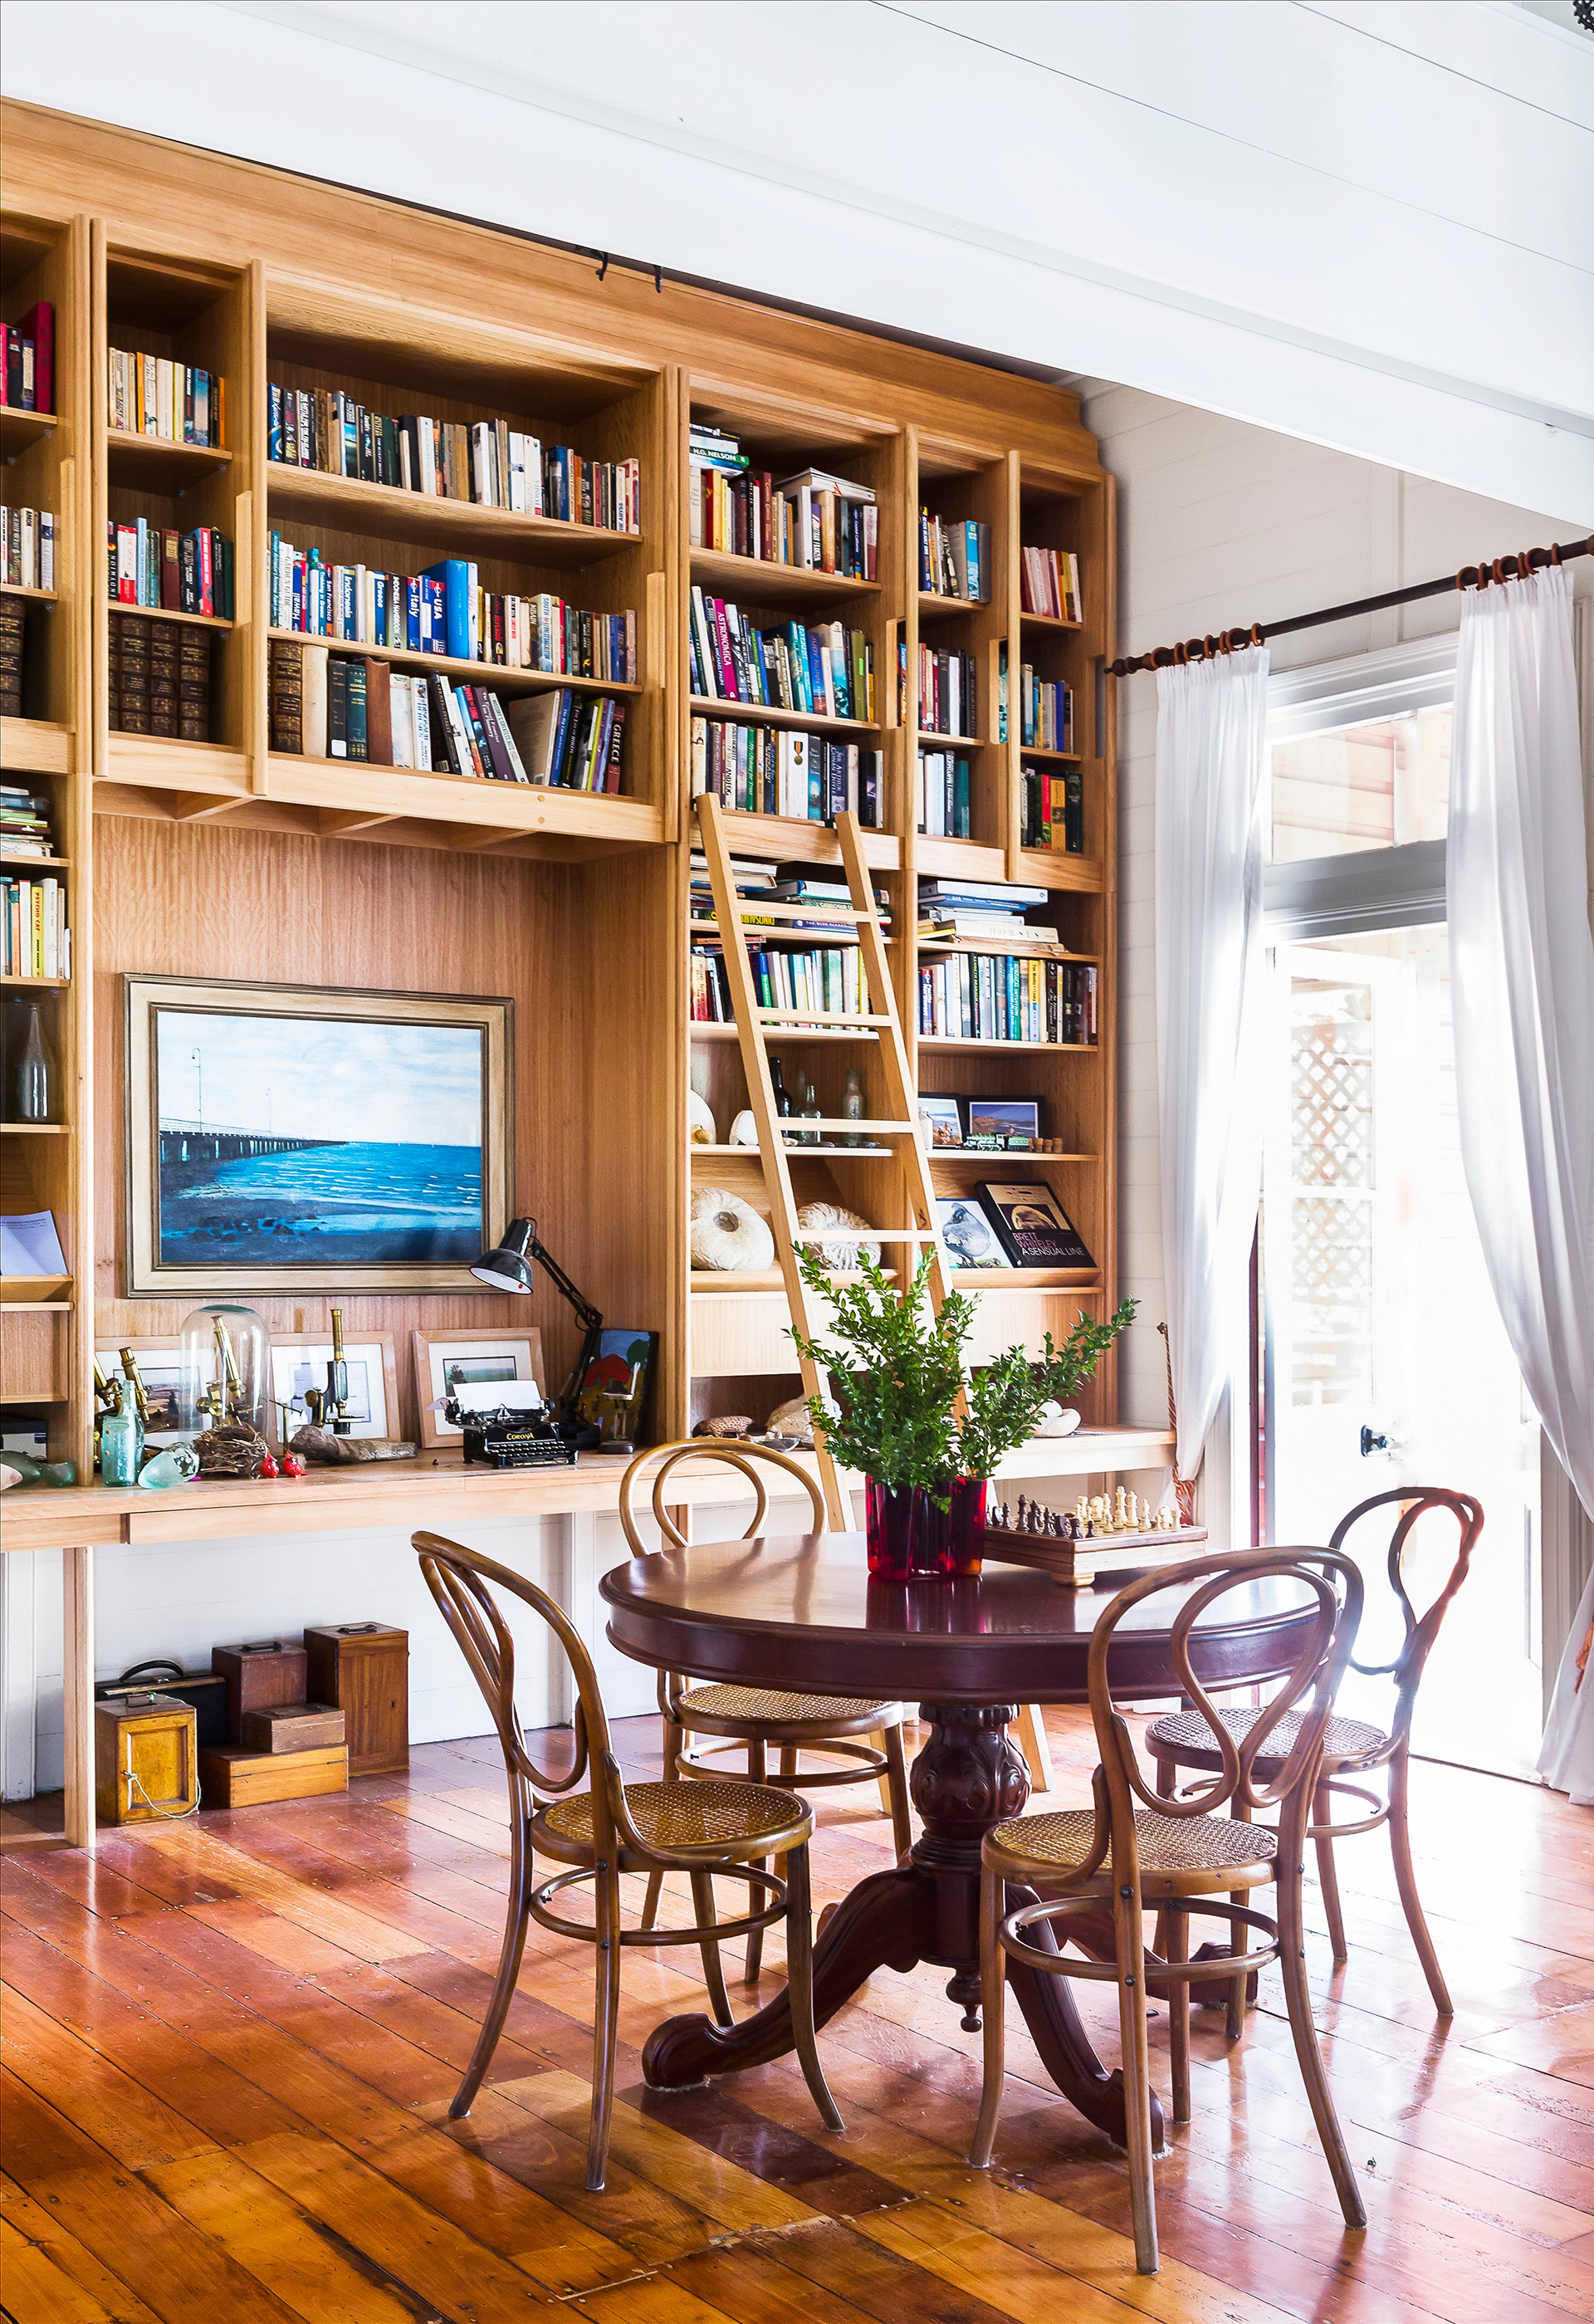 8 Of The Best Home Library Designs HOMES